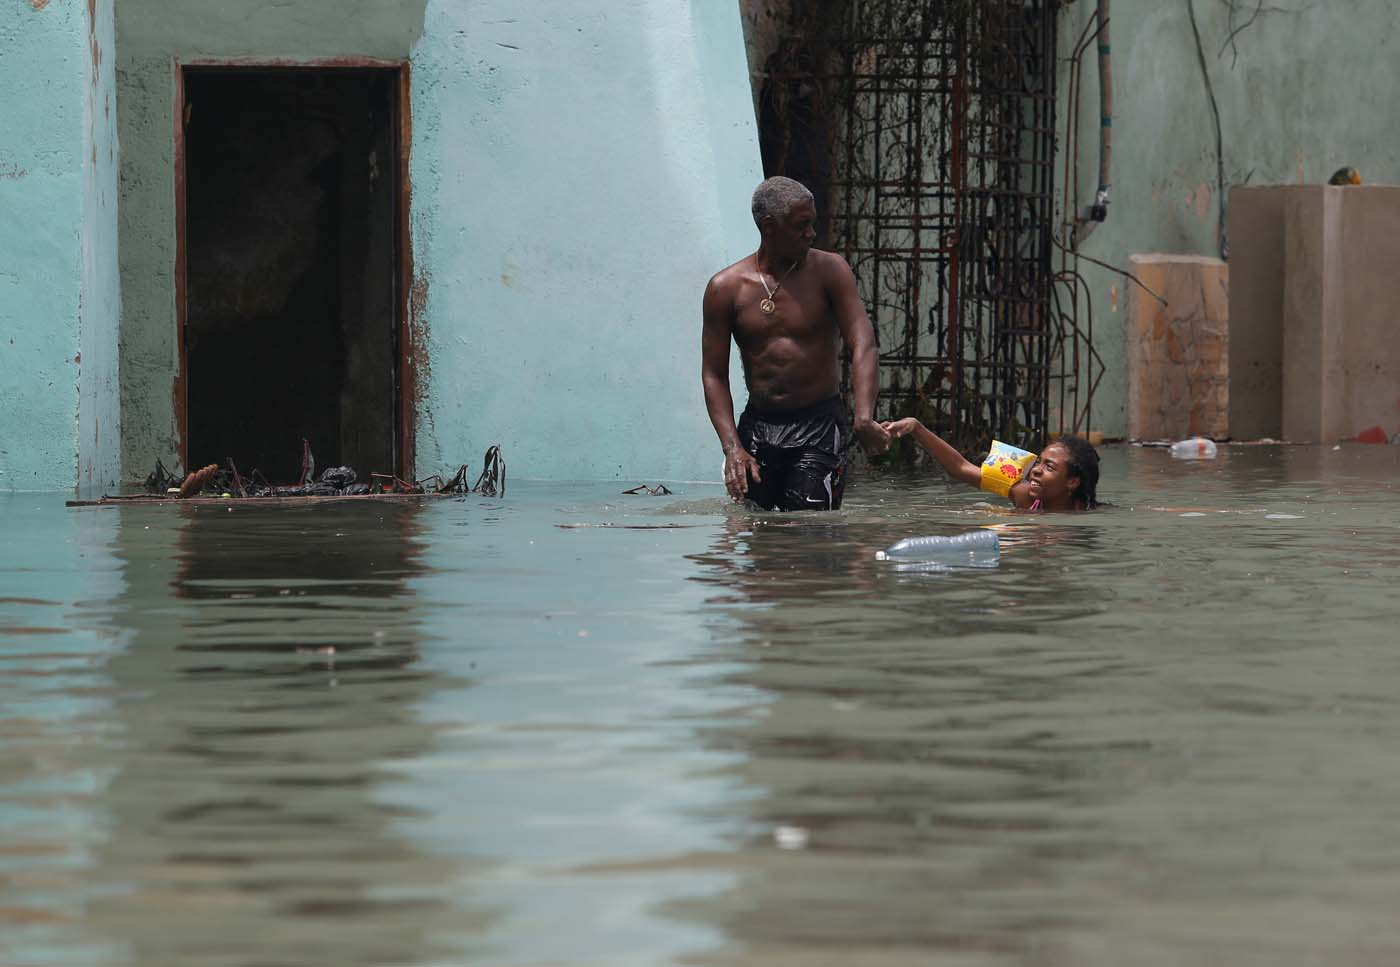 A man helps a girl with a swim float as she plays in a flooded street, after the passing of Hurricane Irma, in Havana, Cuba September 10, 2017. REUTERS/Stringer NO SALES. NO ARCHIVES